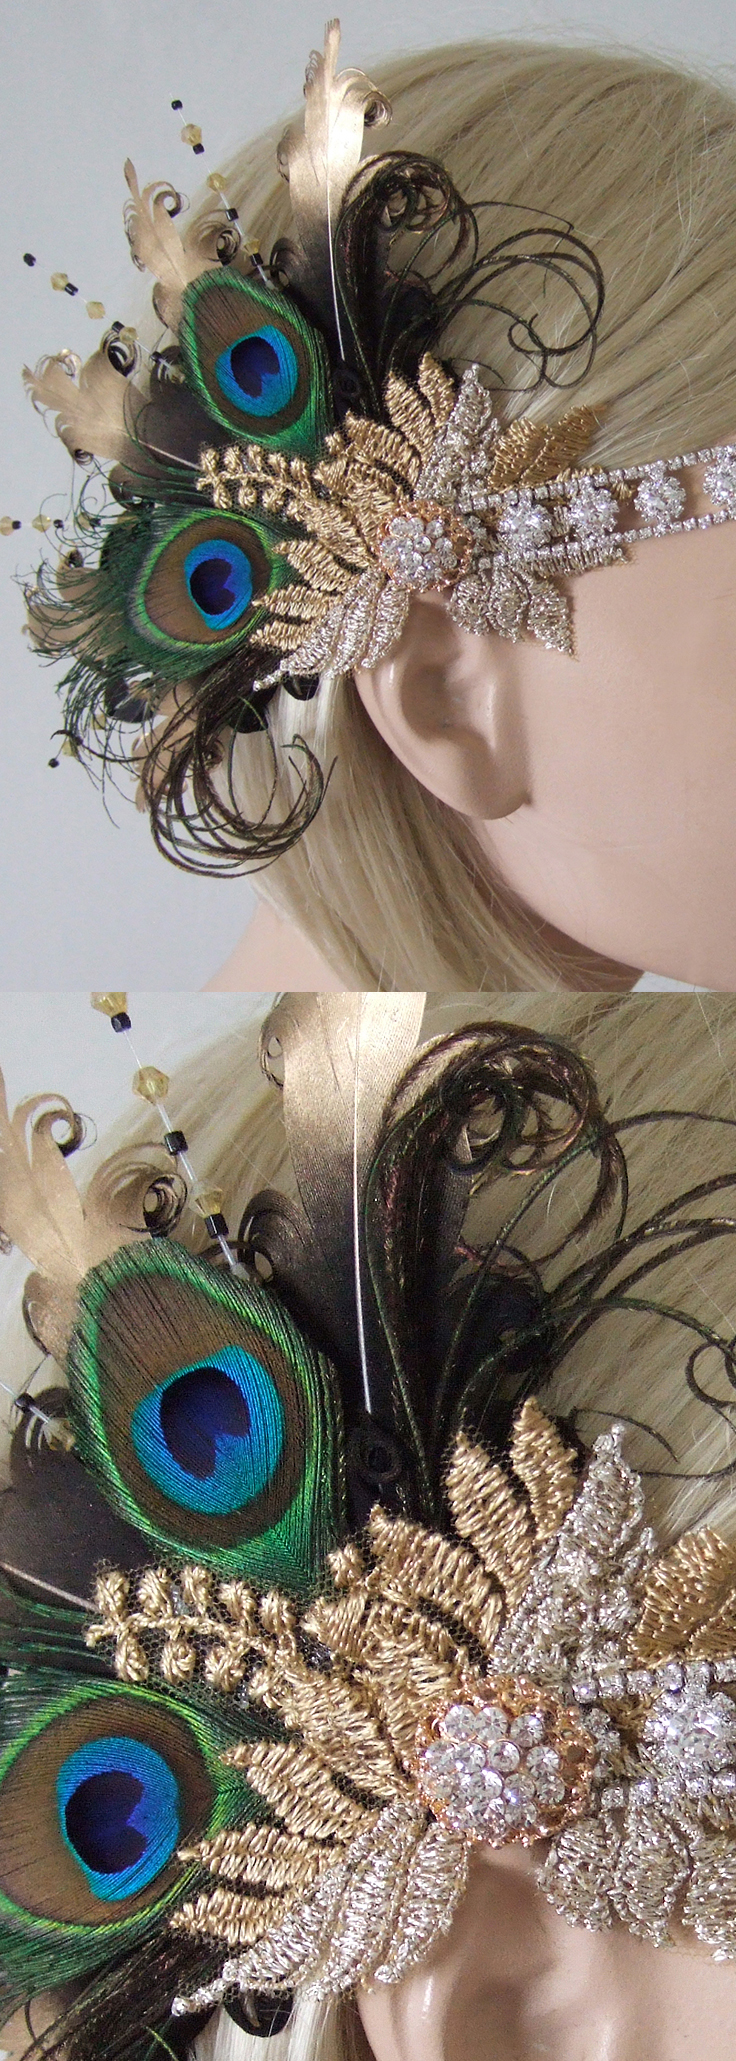 Ladies Gatsby Peacock Feathers Gold Black Party Headband Headpiece, perfect for Halloween, Weddings, Christmas, New Years Eve or Birthday parties with Vintage 1920s Flappergirl Gatsby Theme. Downton Abbey theme. #millinery #peacock #fashionista #bridal